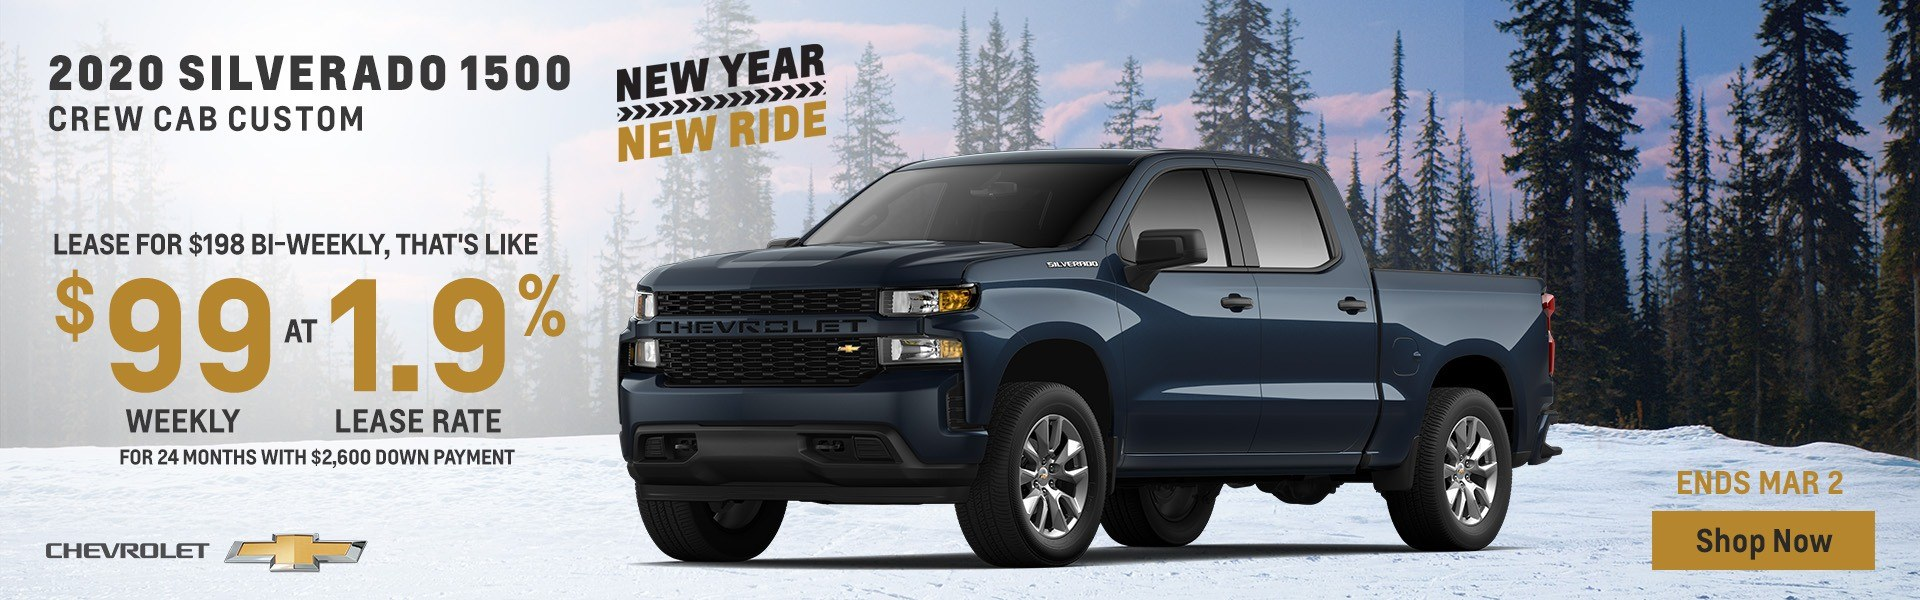 2020 Silverado Crew Cab from $99 Weekly